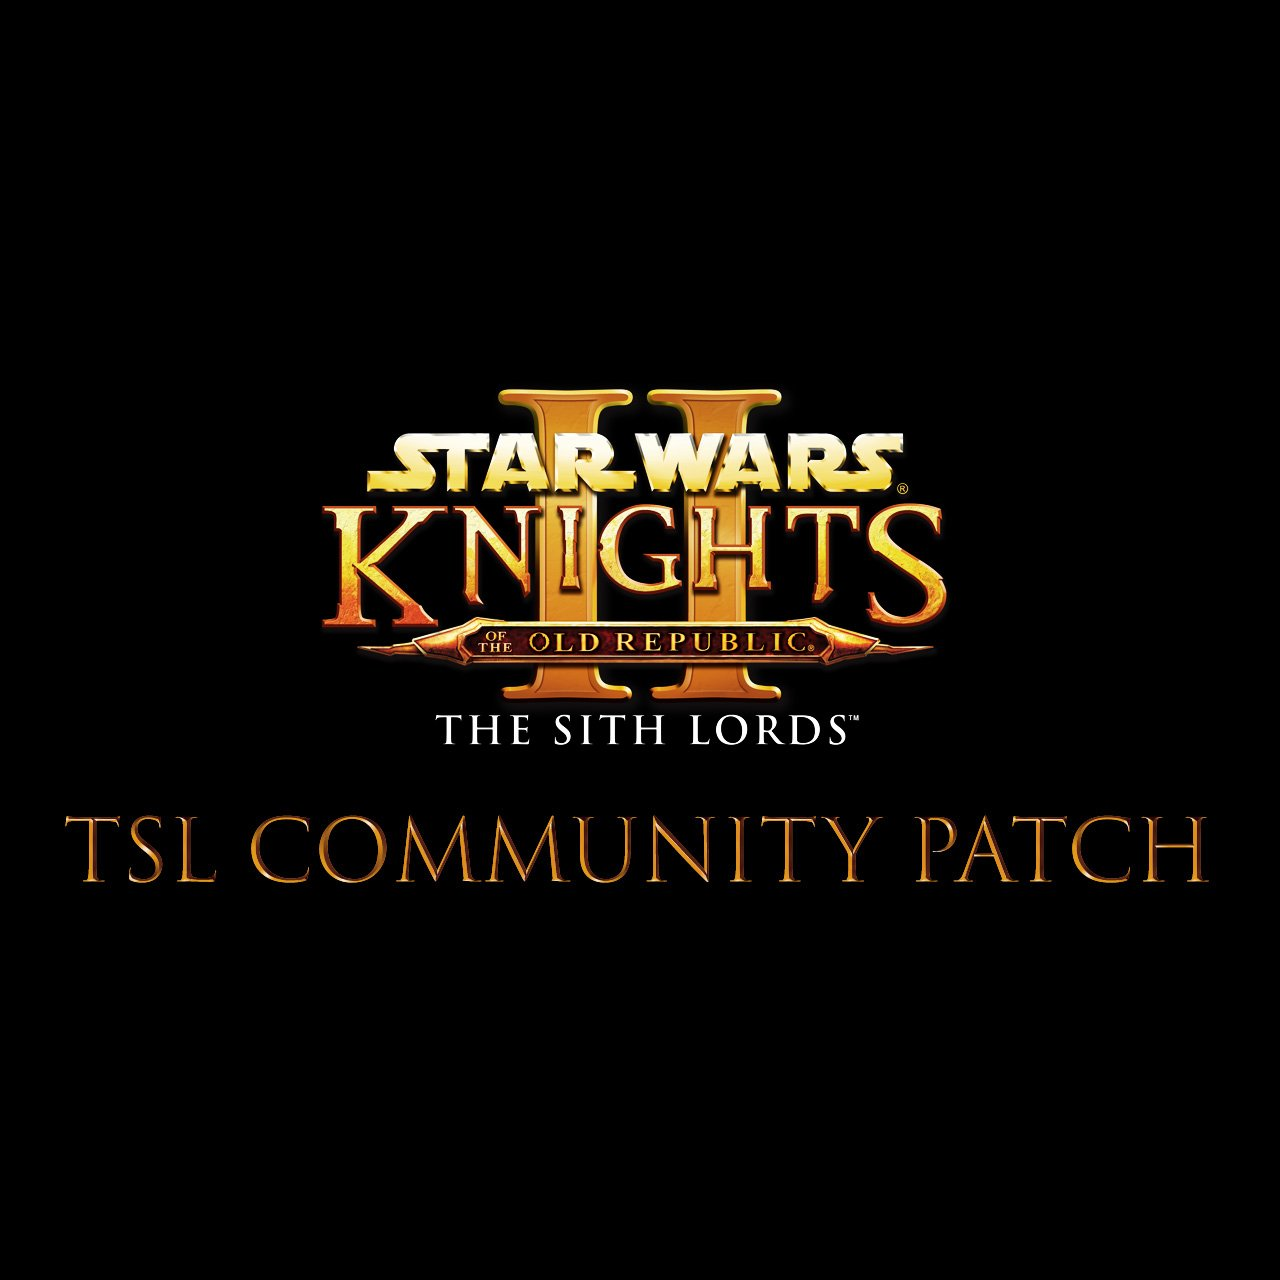 KOTOR 2 Community Patch